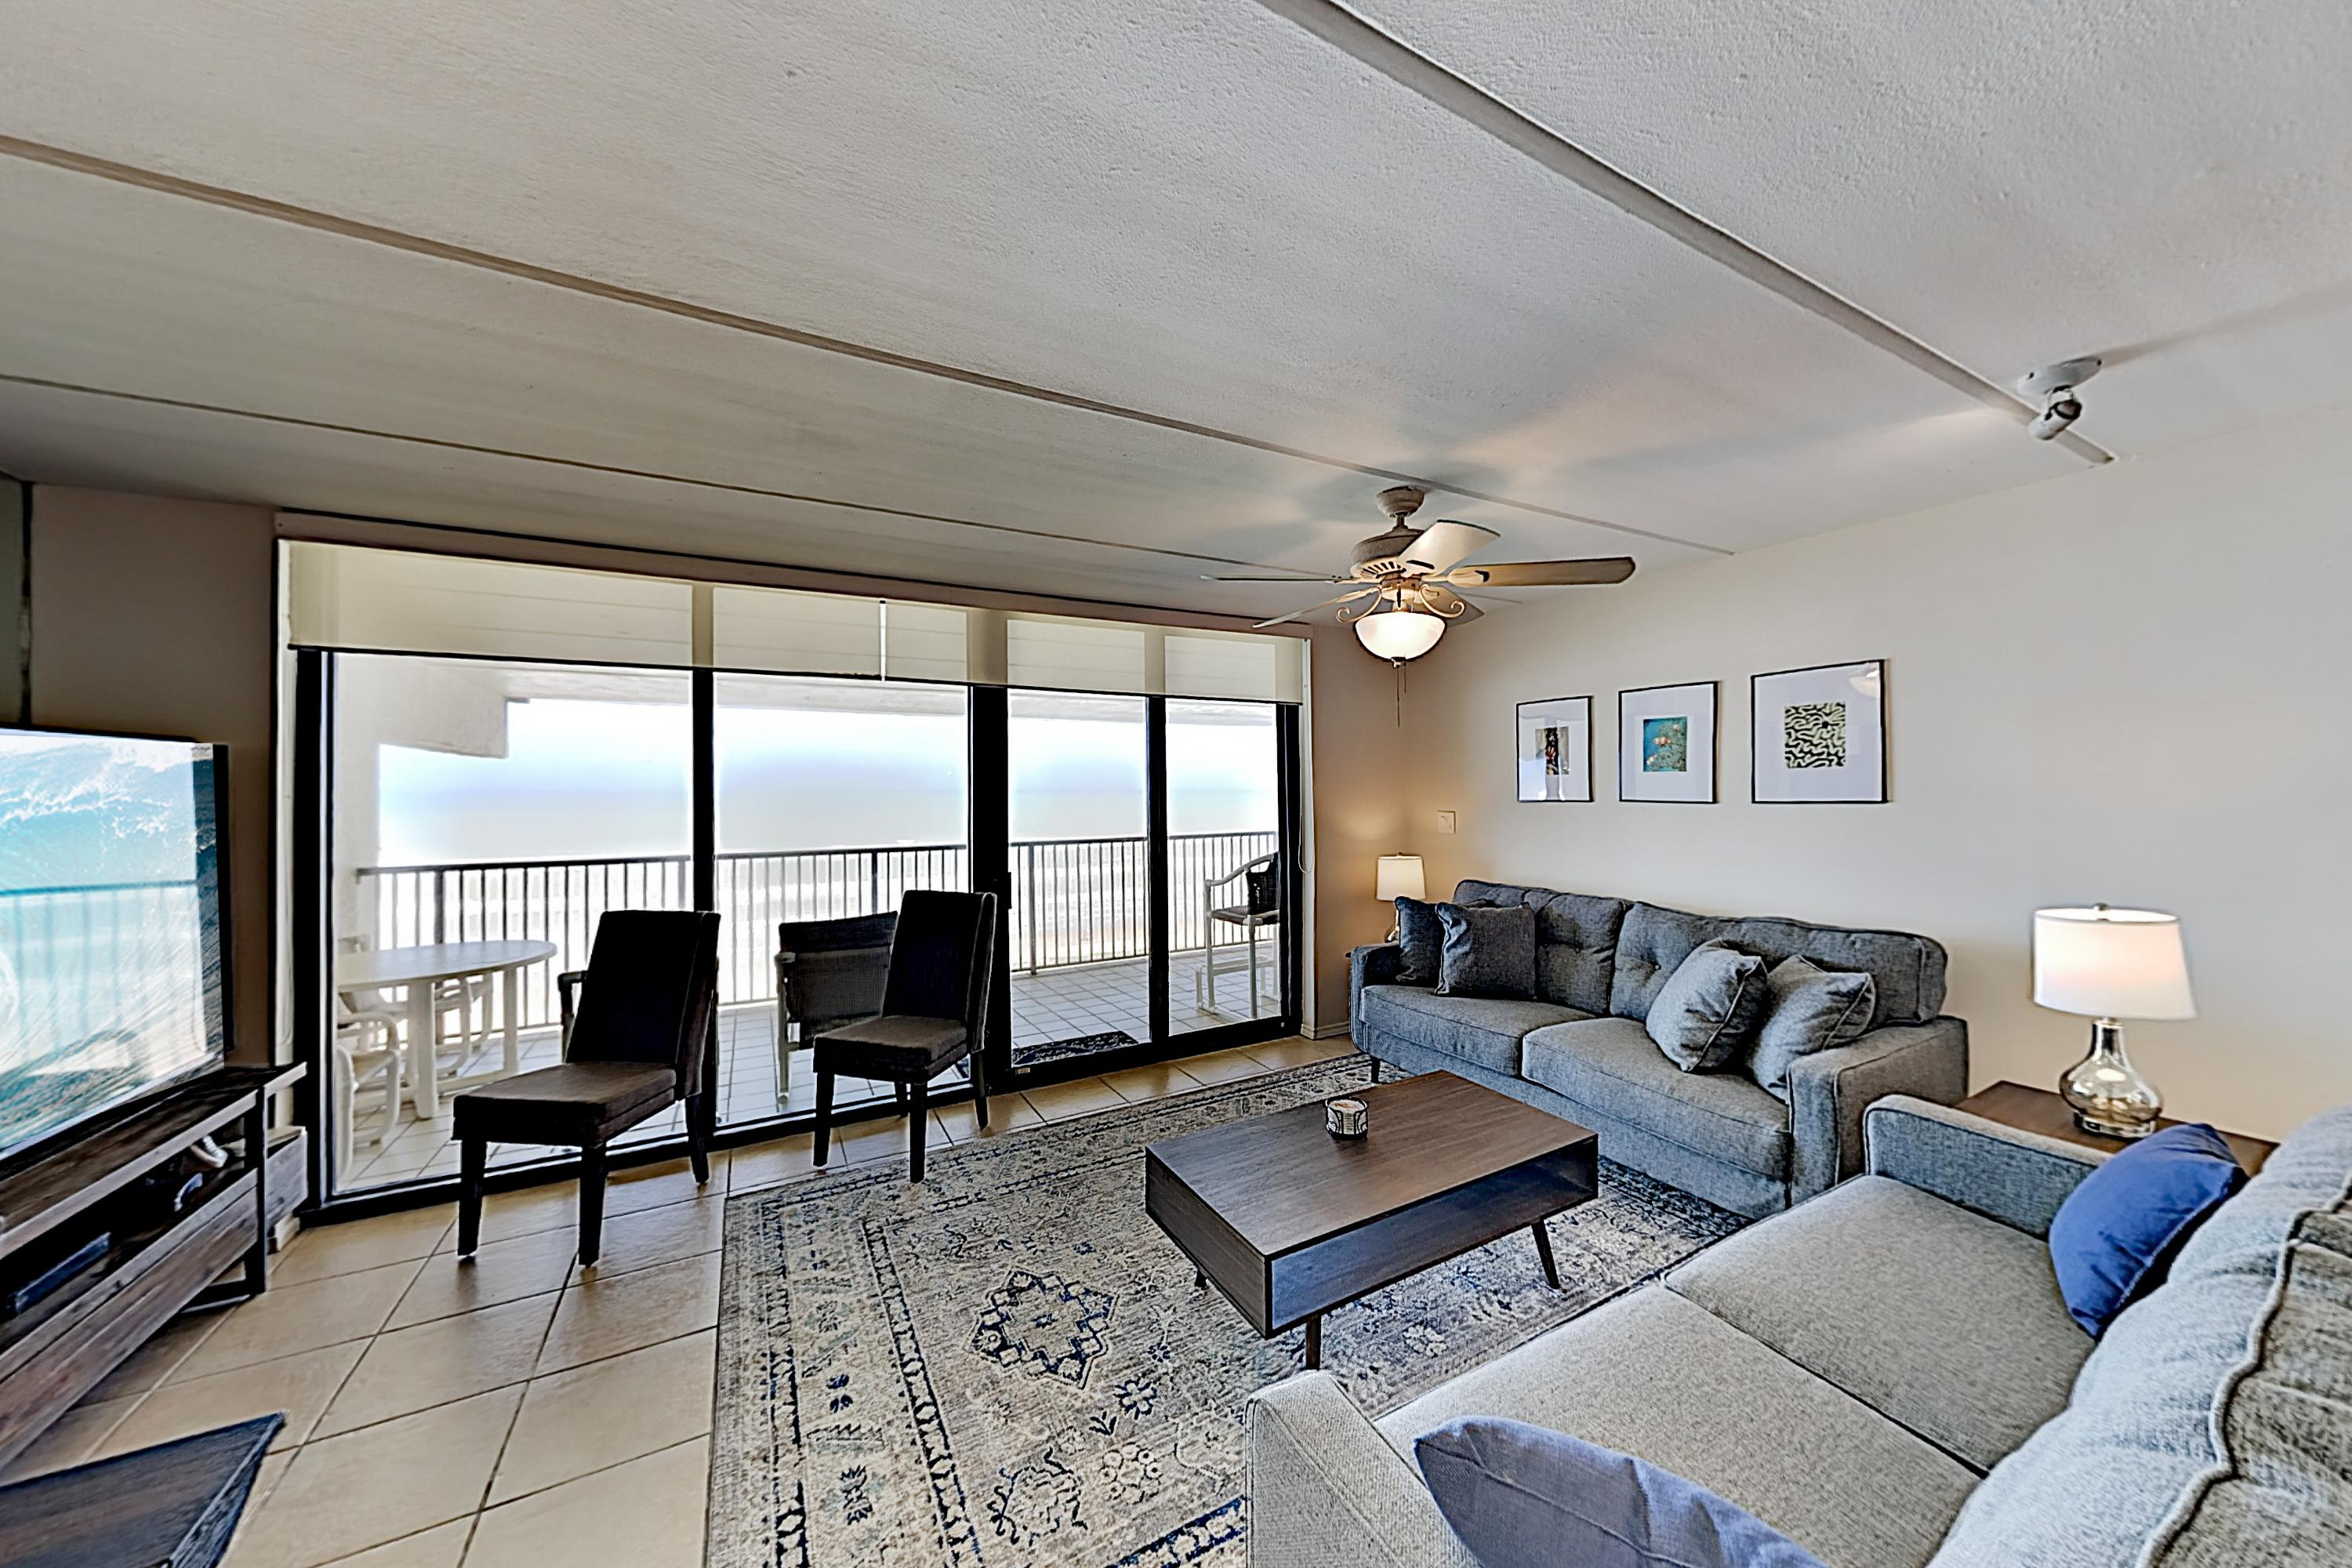 Welcome to Suntide III #1008! This beachfront condo is professionally managed by TurnKey Vacation Rentals.